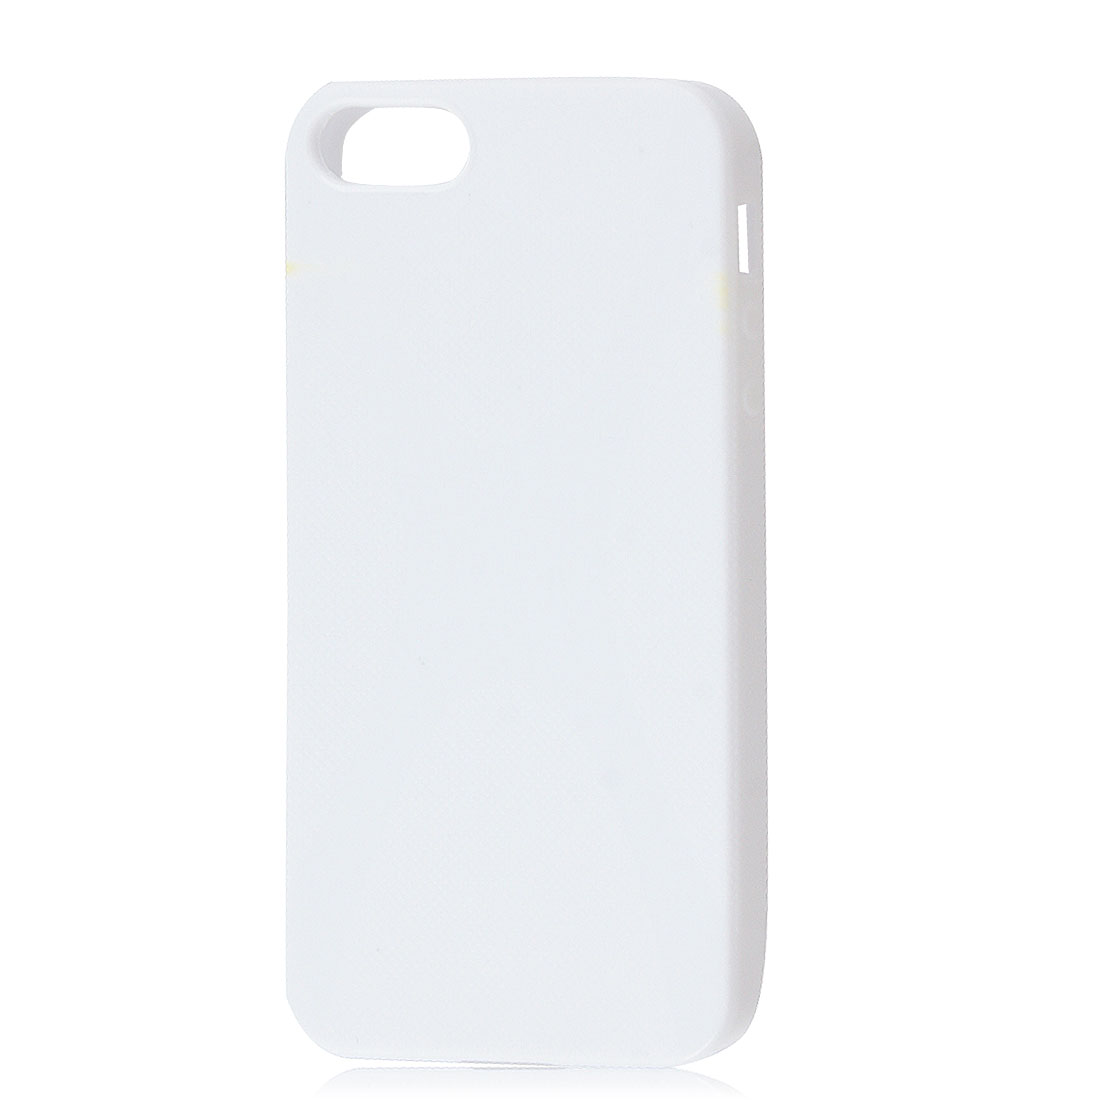 Textured White Soft Plastic Protective Cover Case for iPhone 5 5G